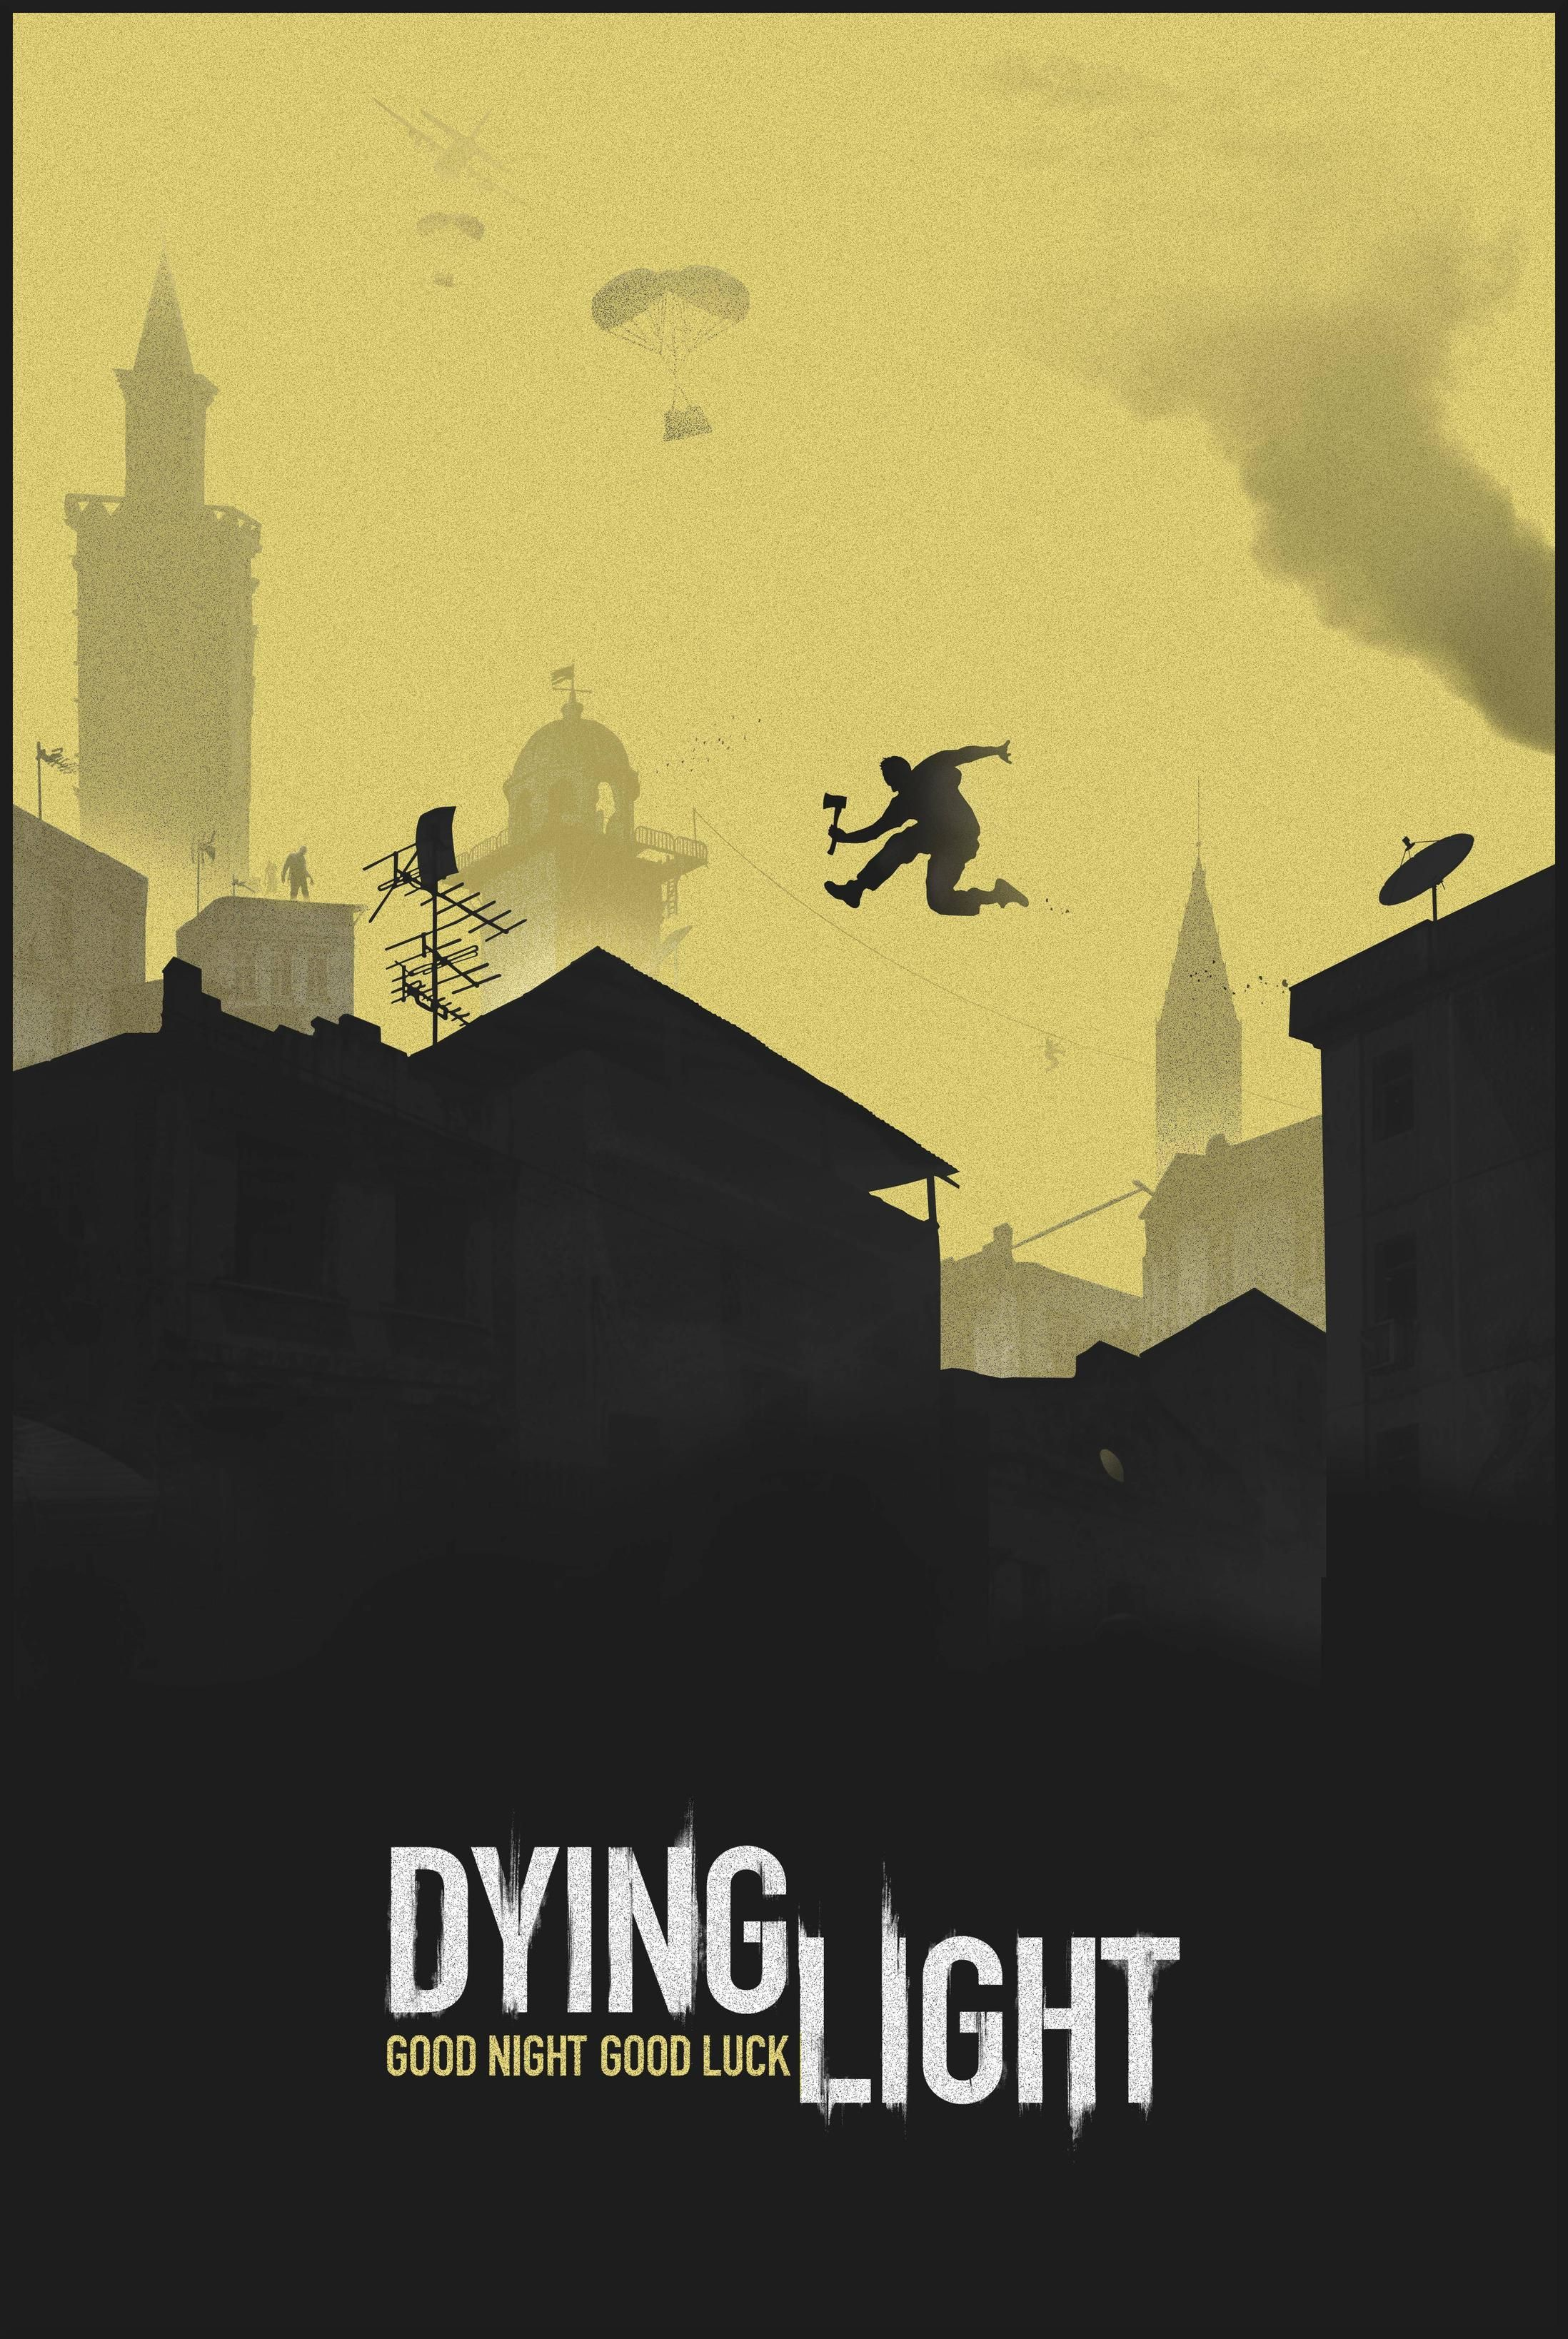 Dying Light City Skyline Silhouette Only Been Playing This For A Few Days But The Parkour Mirrors Edge Or Assassins Creed Influence With Fallout Like